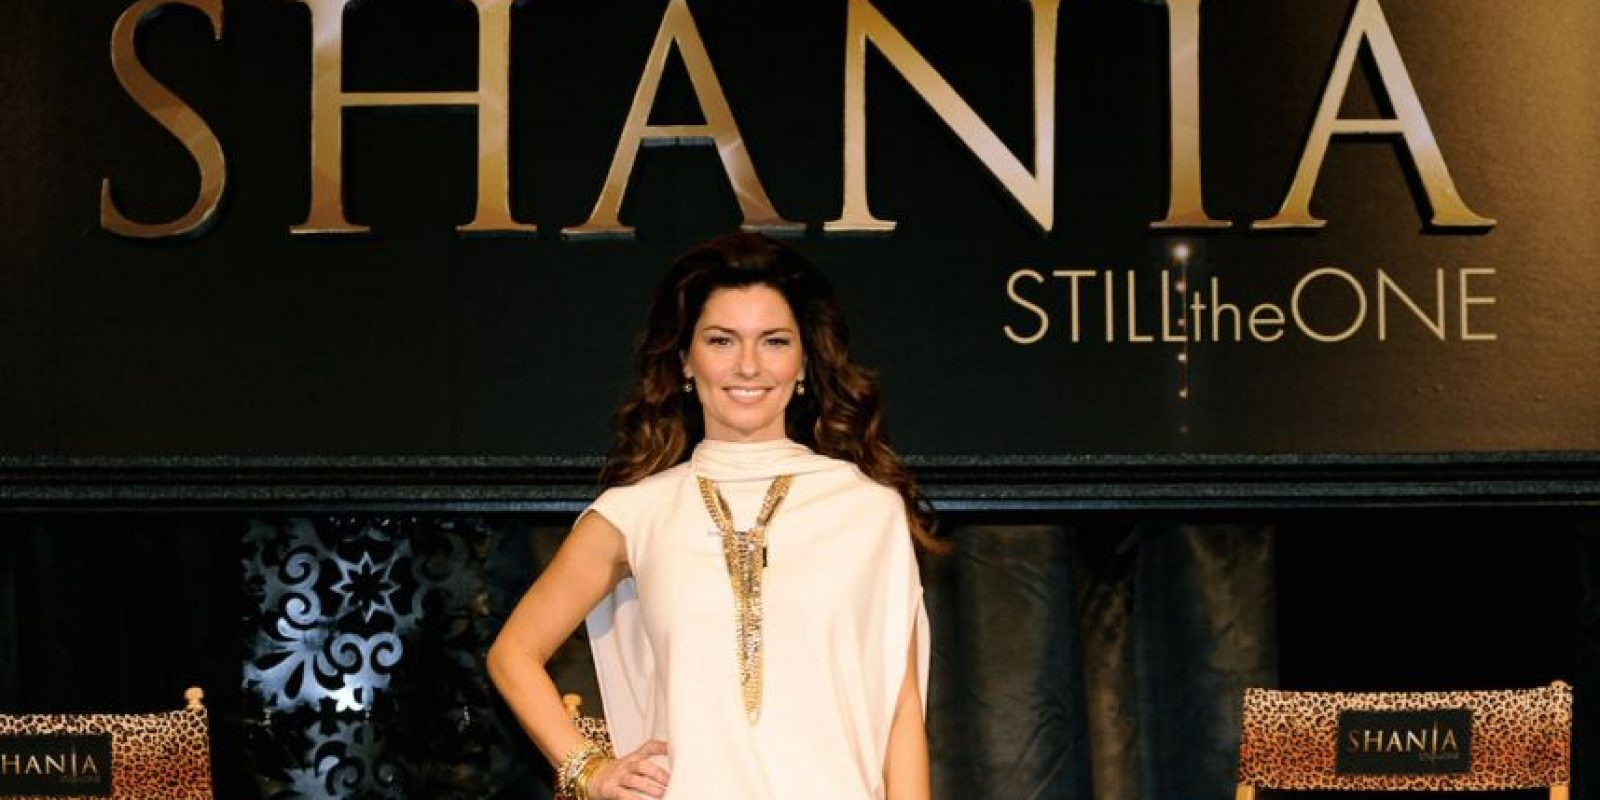 12. Shania Twain Foto: Getty Images